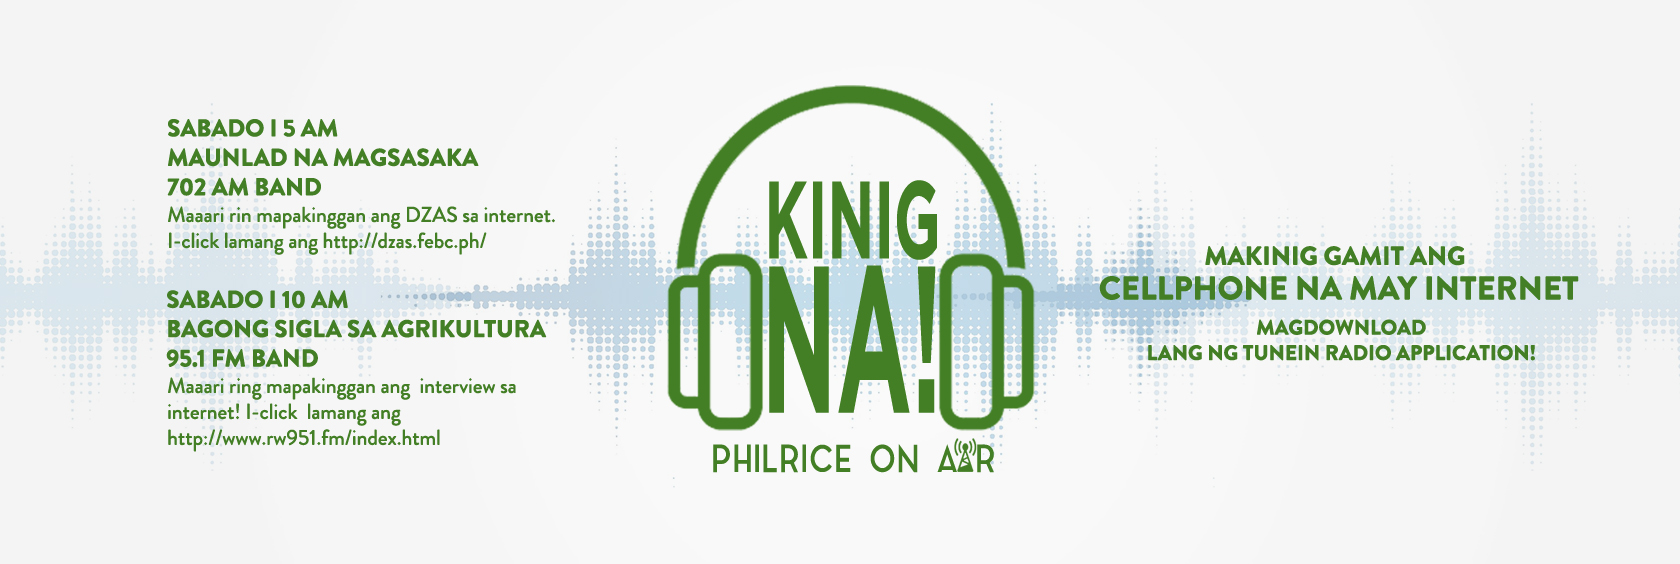 philrice-on-air